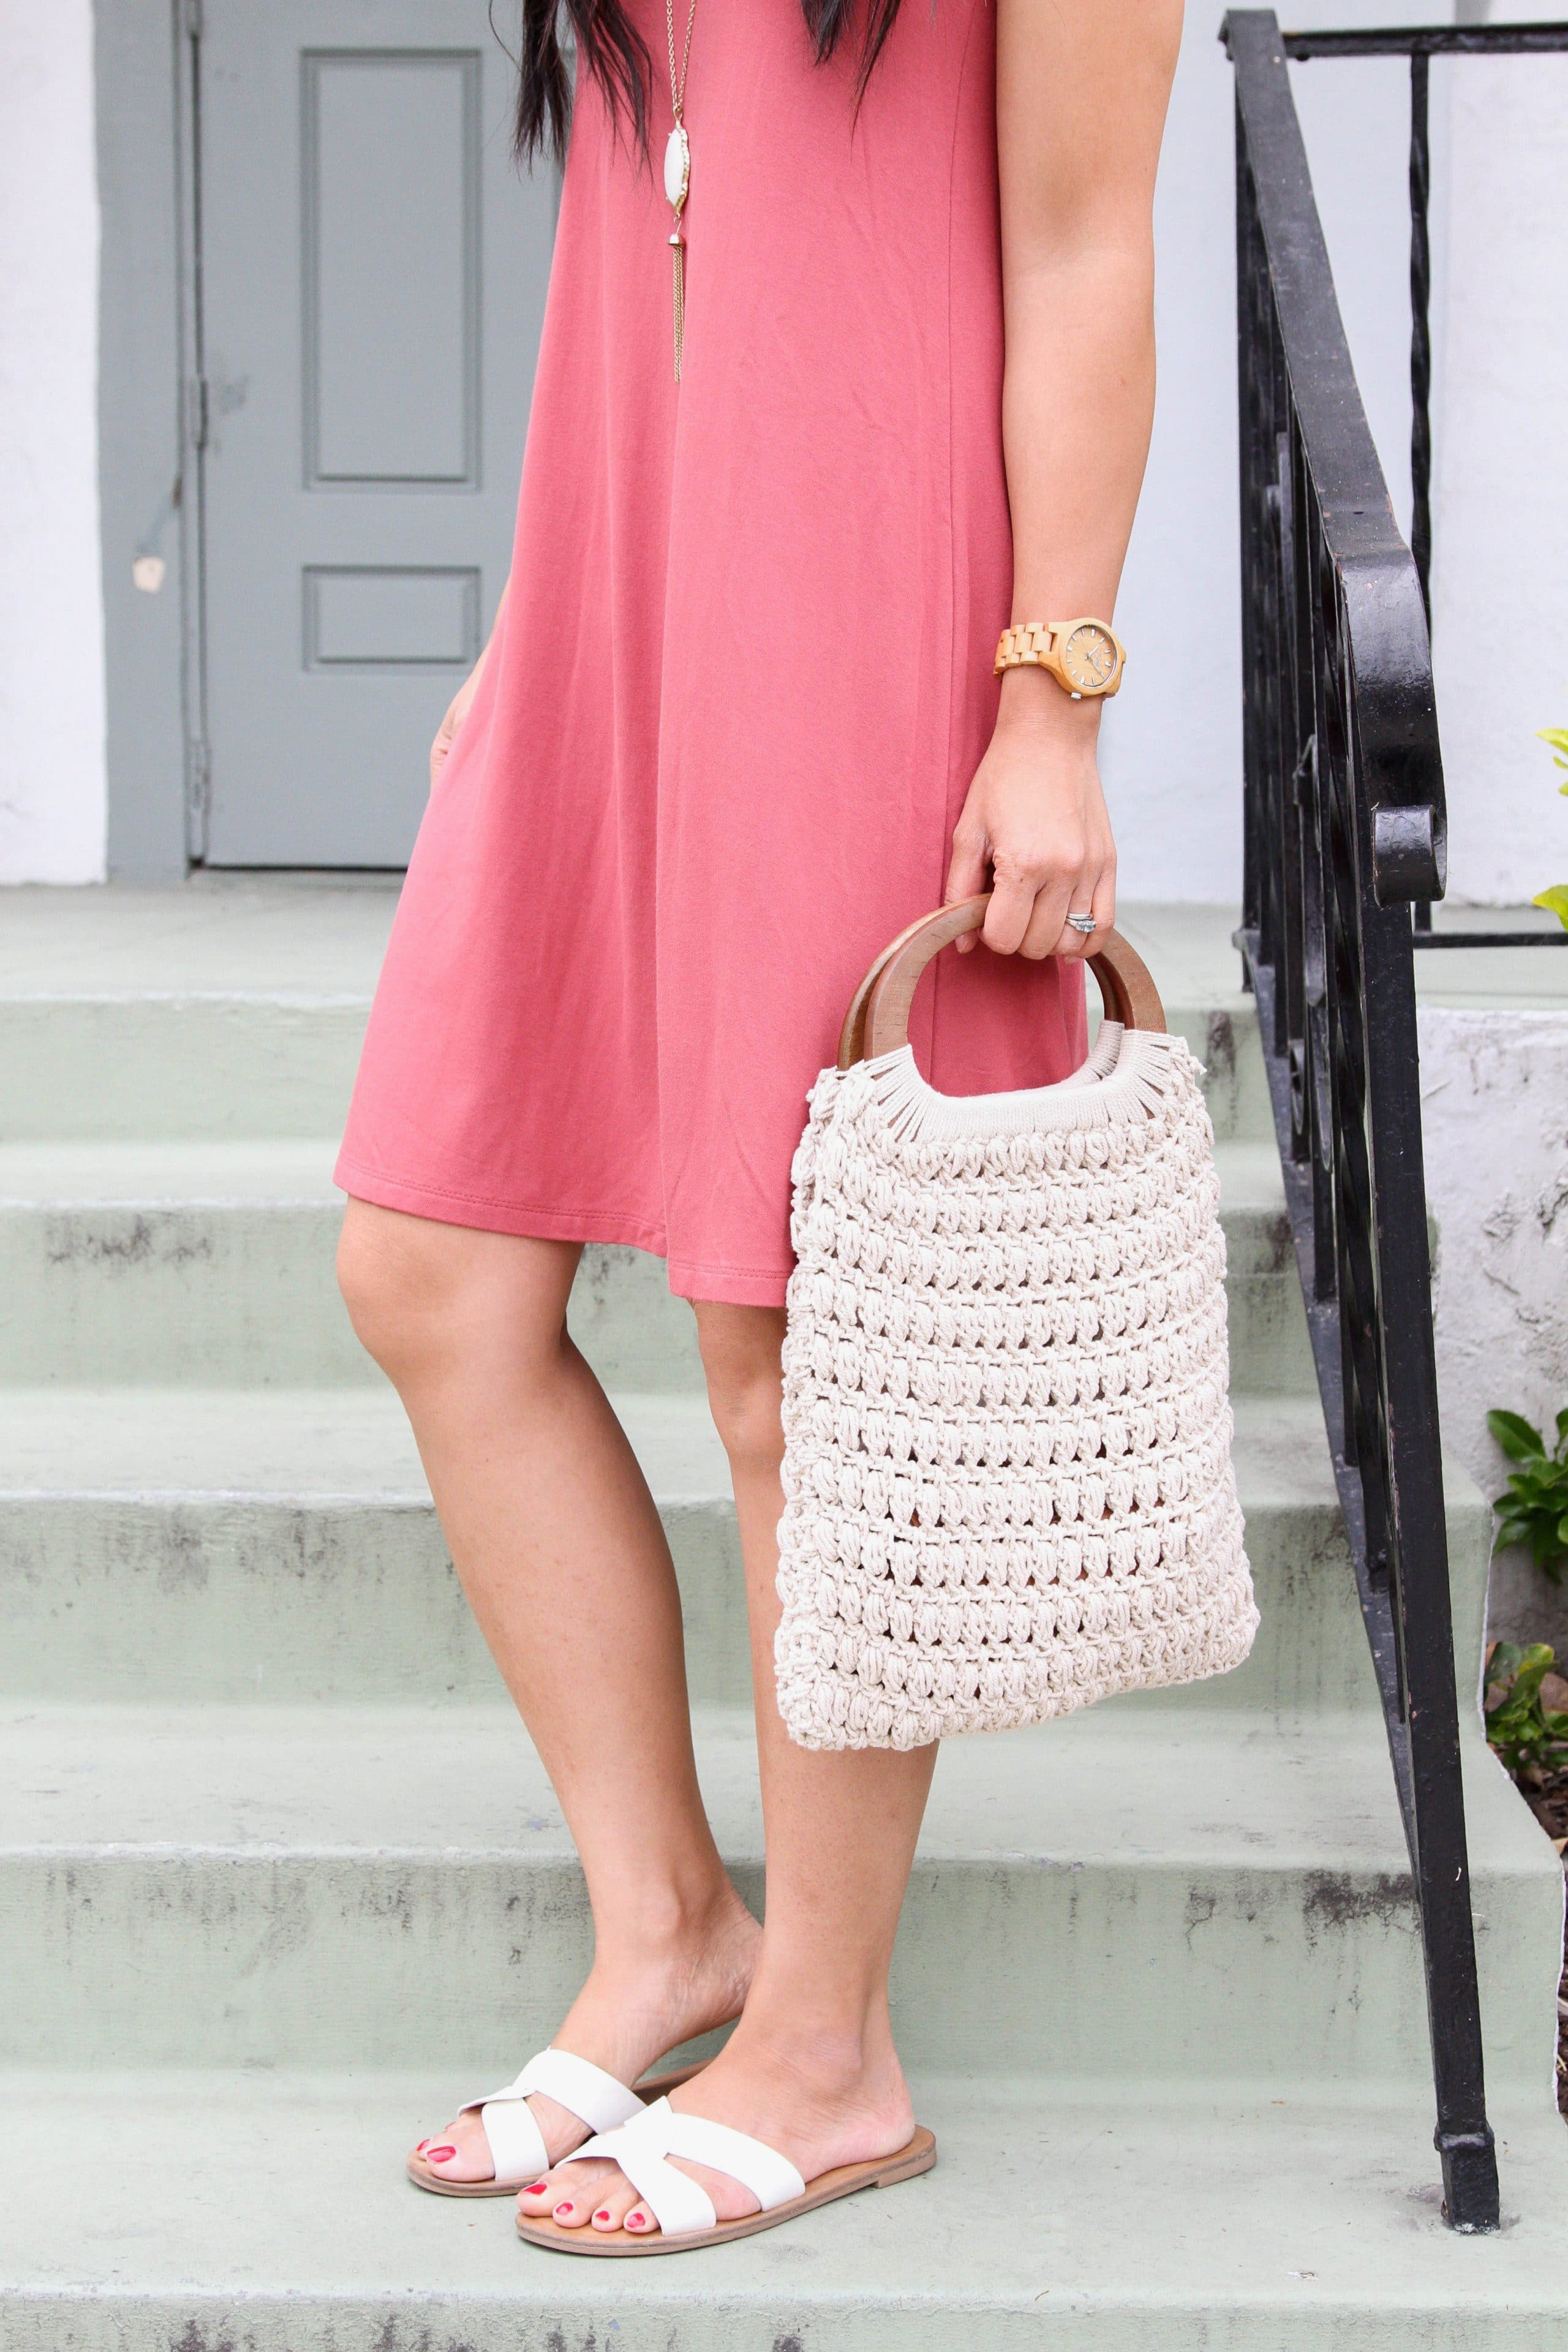 dusty pink swing dress + macrame handbag + white sandals